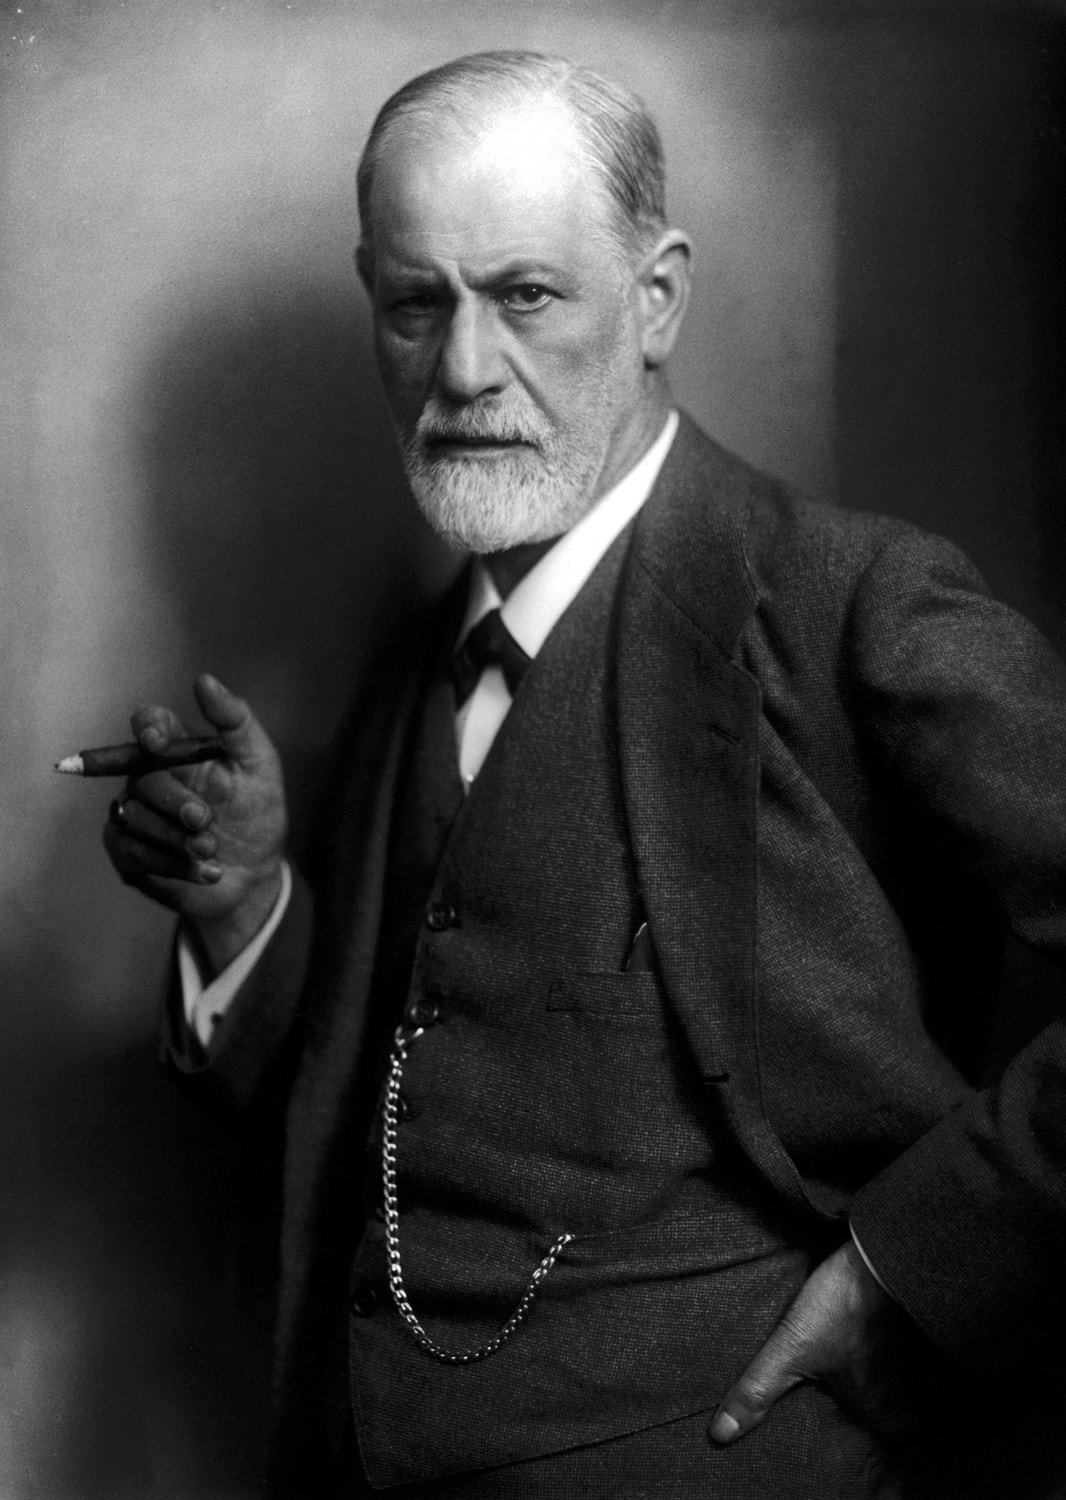 Sigmund Freud is the founder of psychoanalysis.